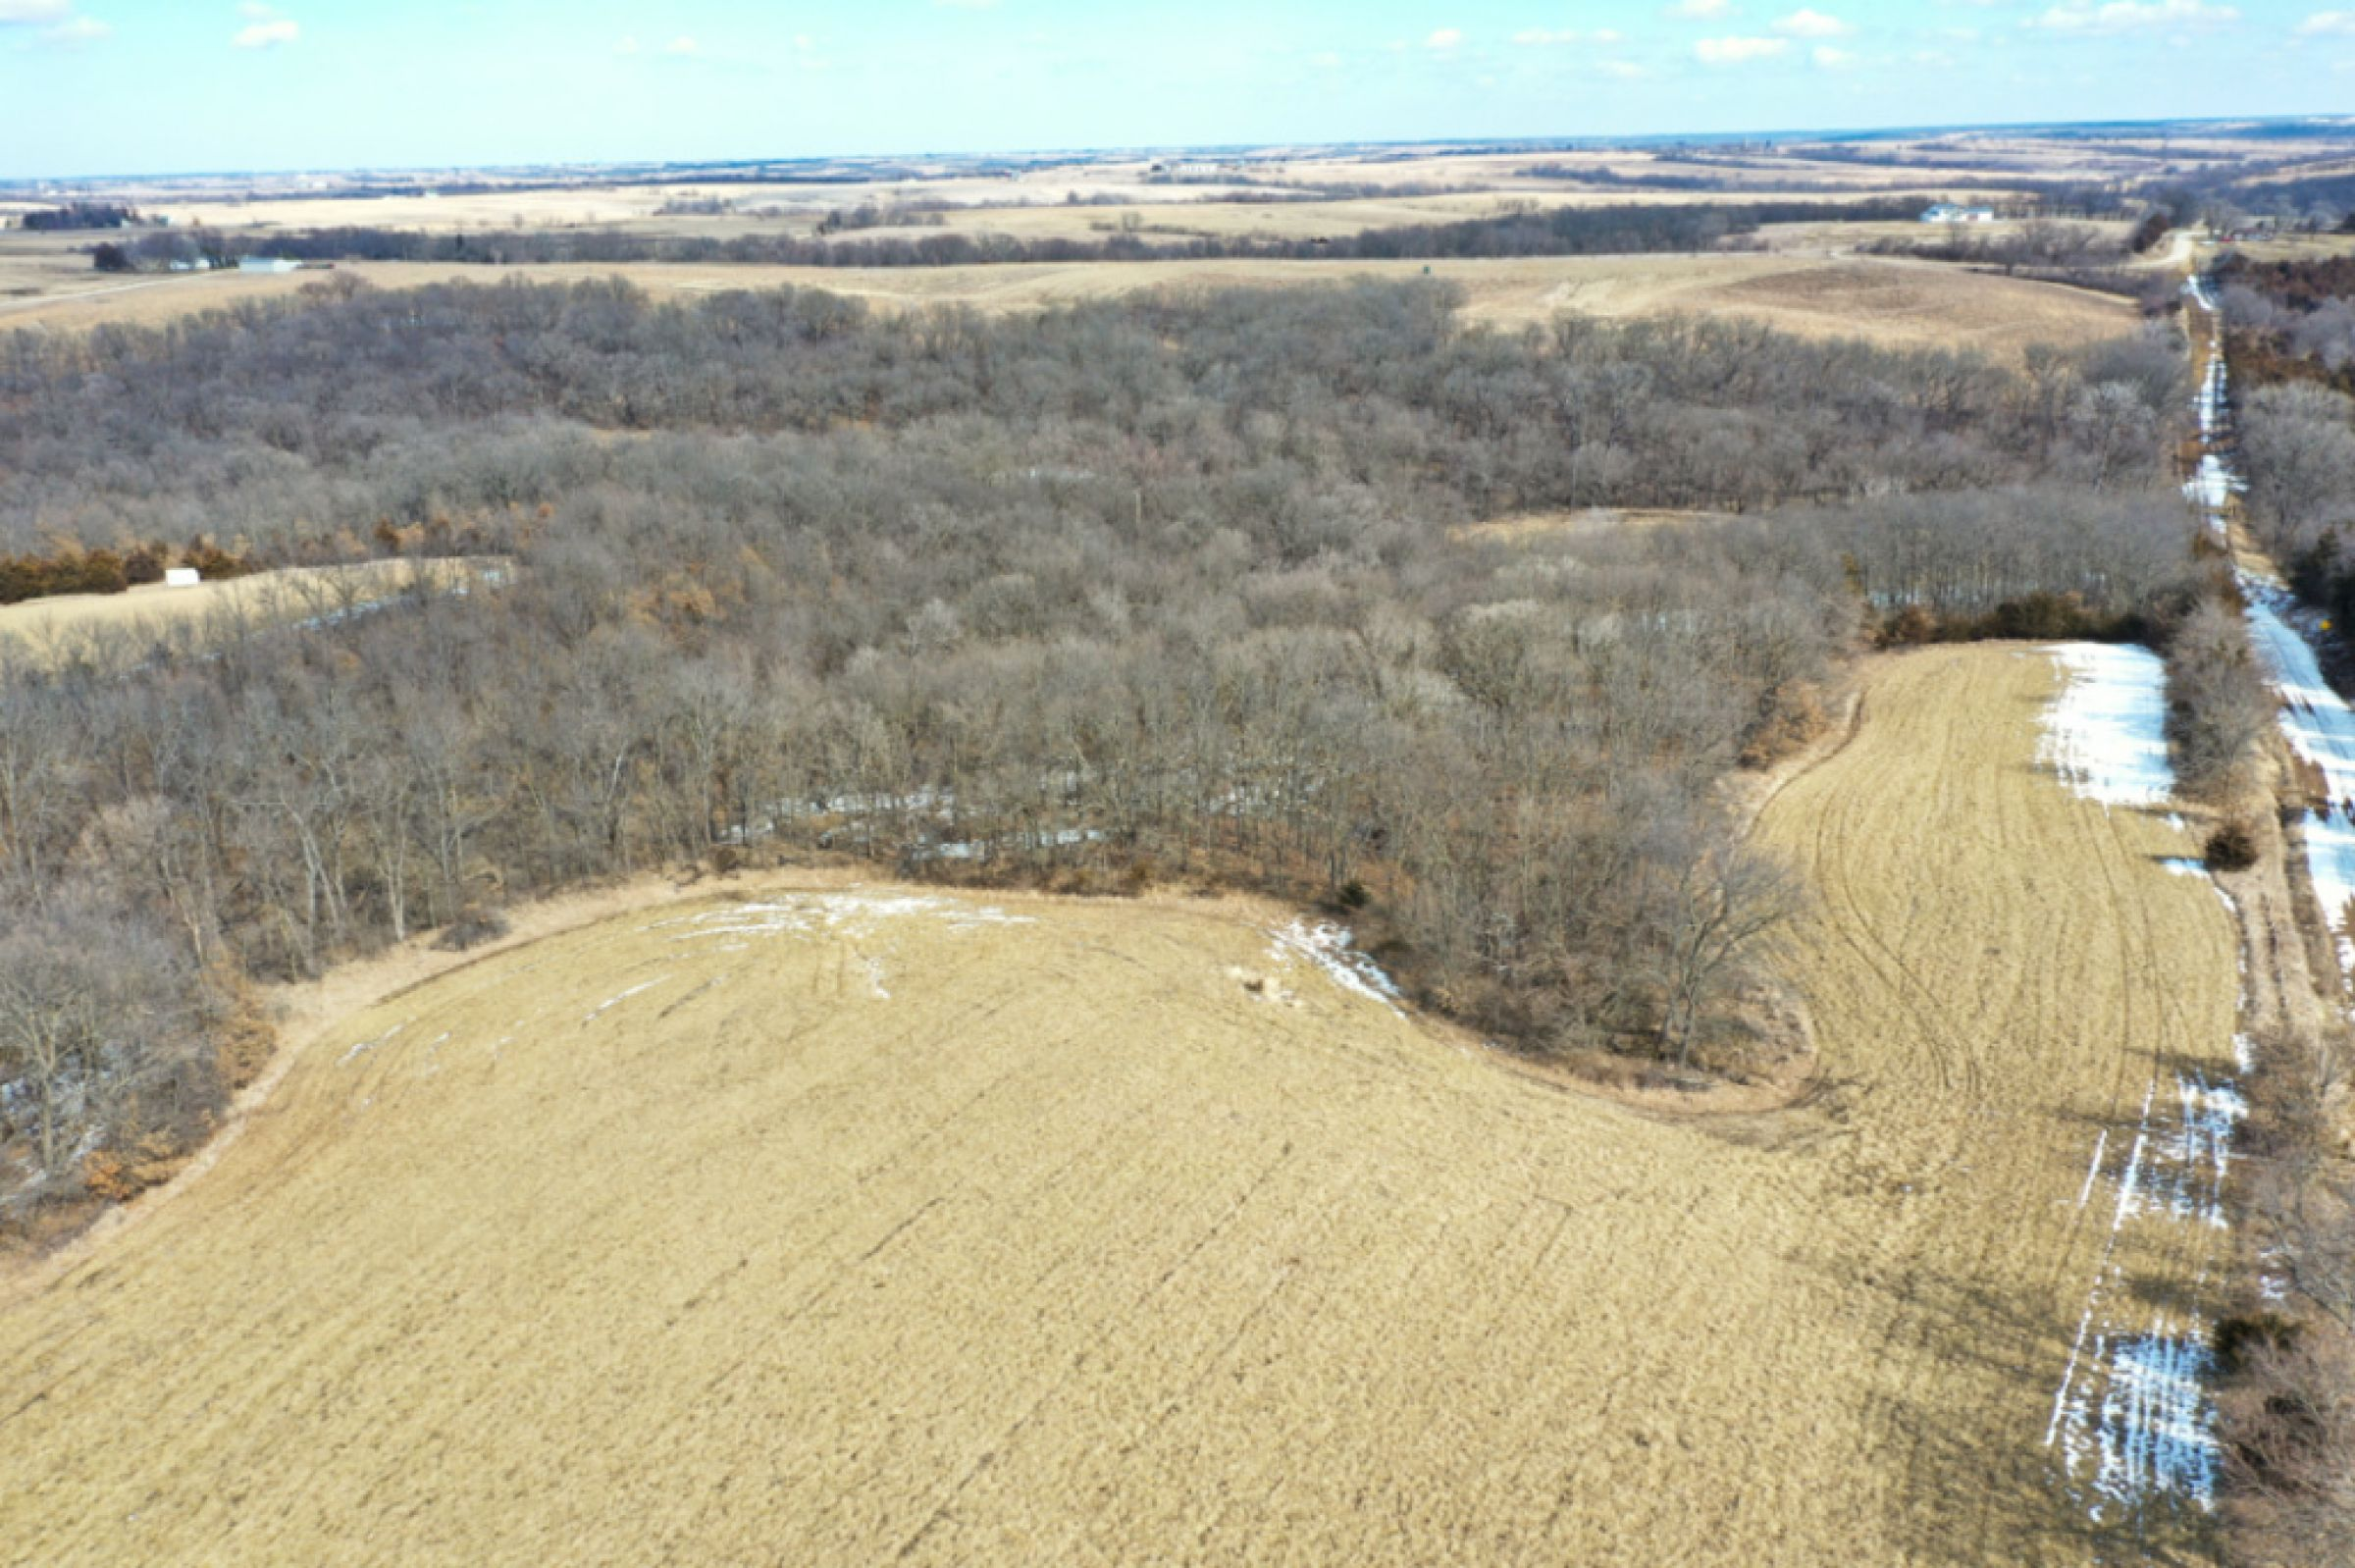 Peoples Company Land for Sale-Marion County, IA-#14849-wyoming-street-columbia-50057